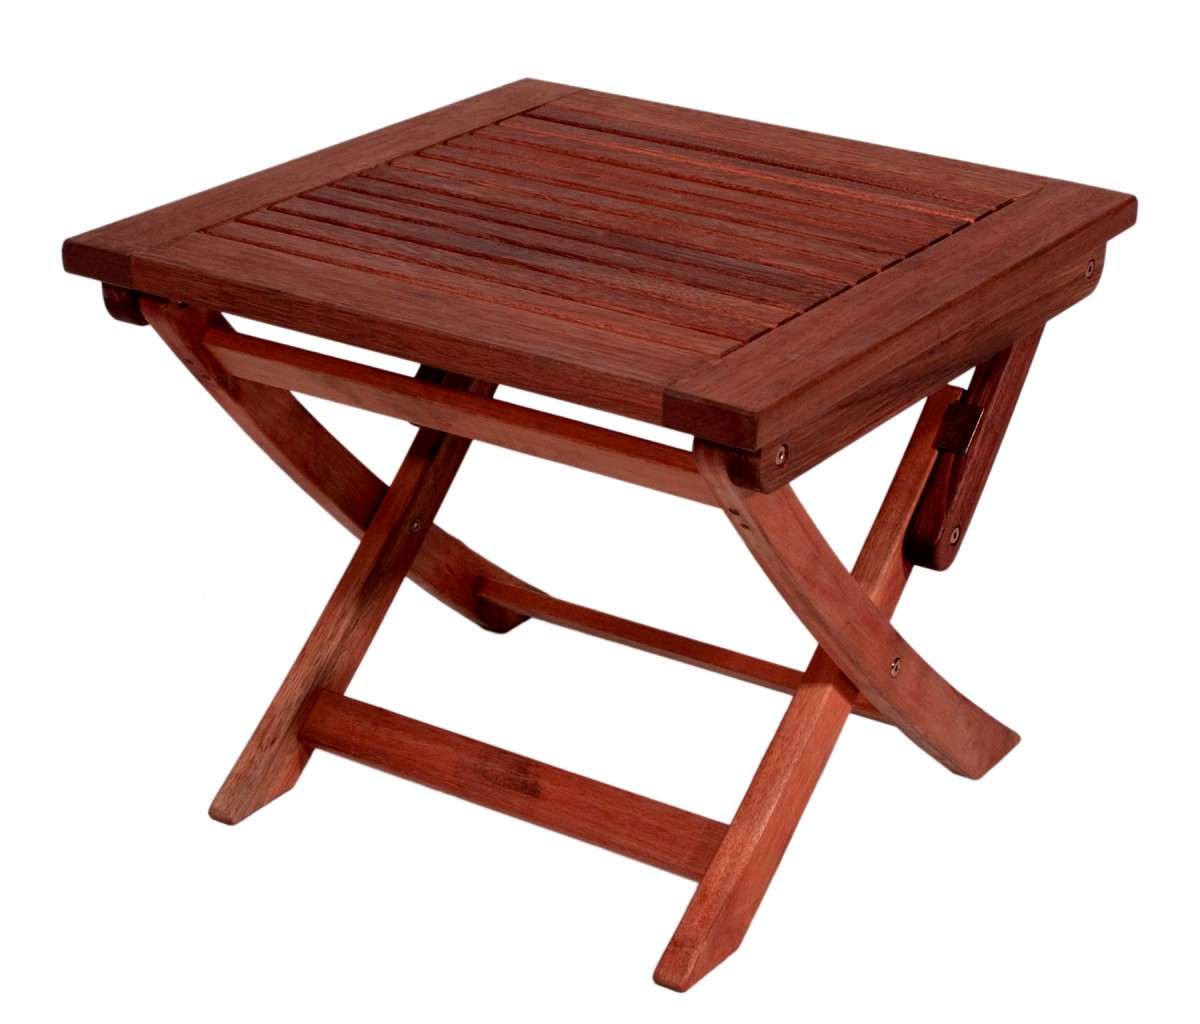 Table basse sumatra mobilier location - Petite table basse carree ...